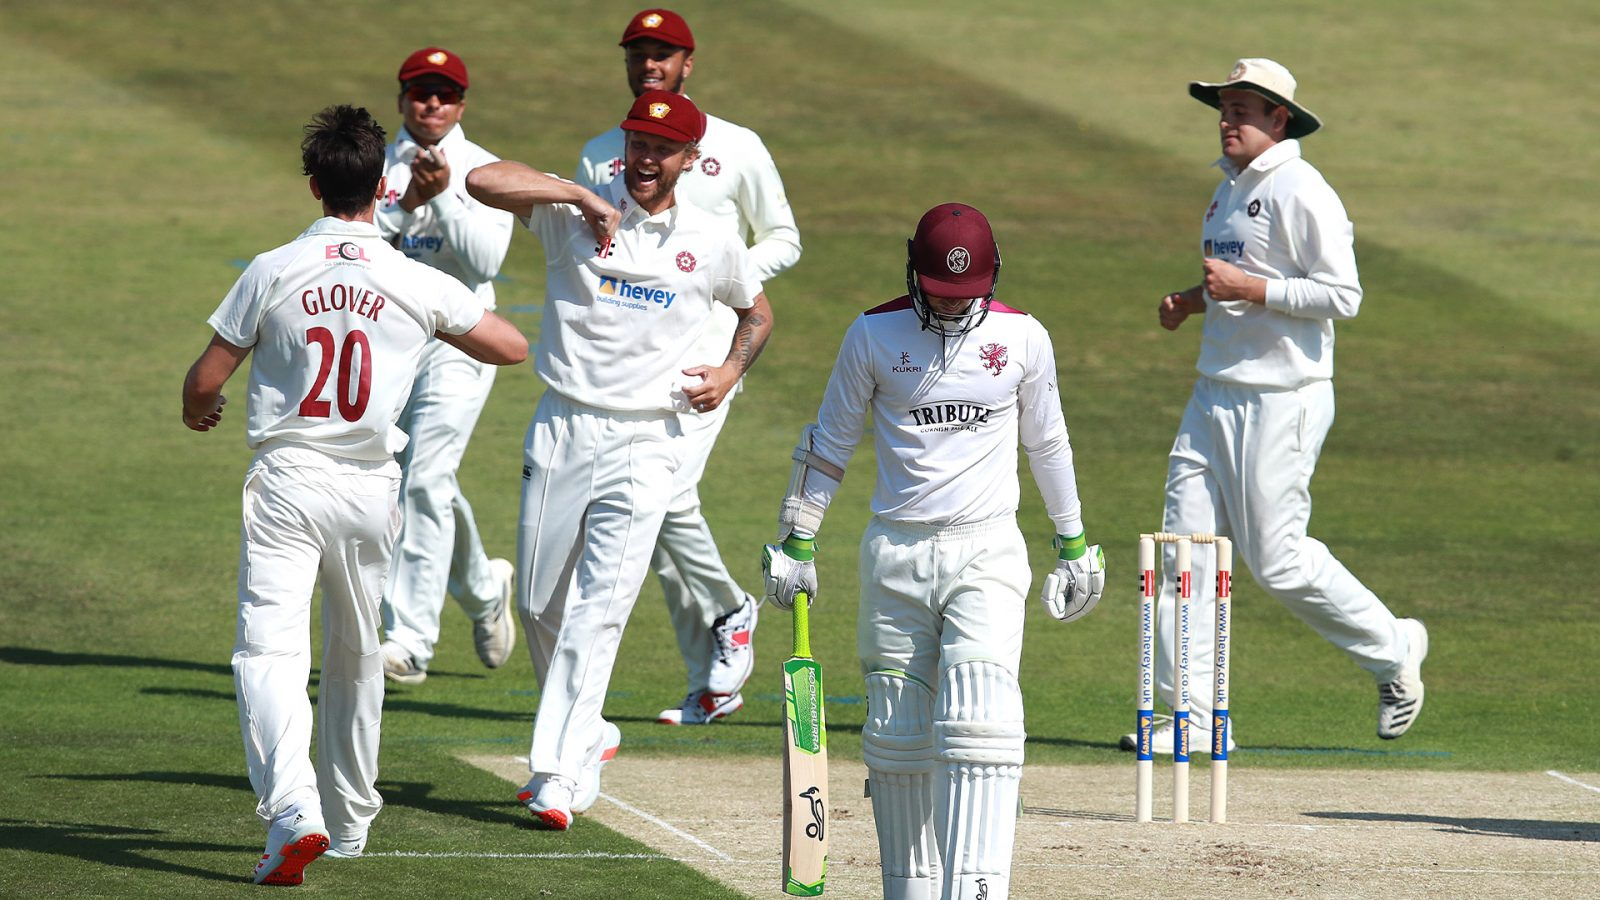 Bowlers Run Rampant As 21 Wickets Fall On Day 1